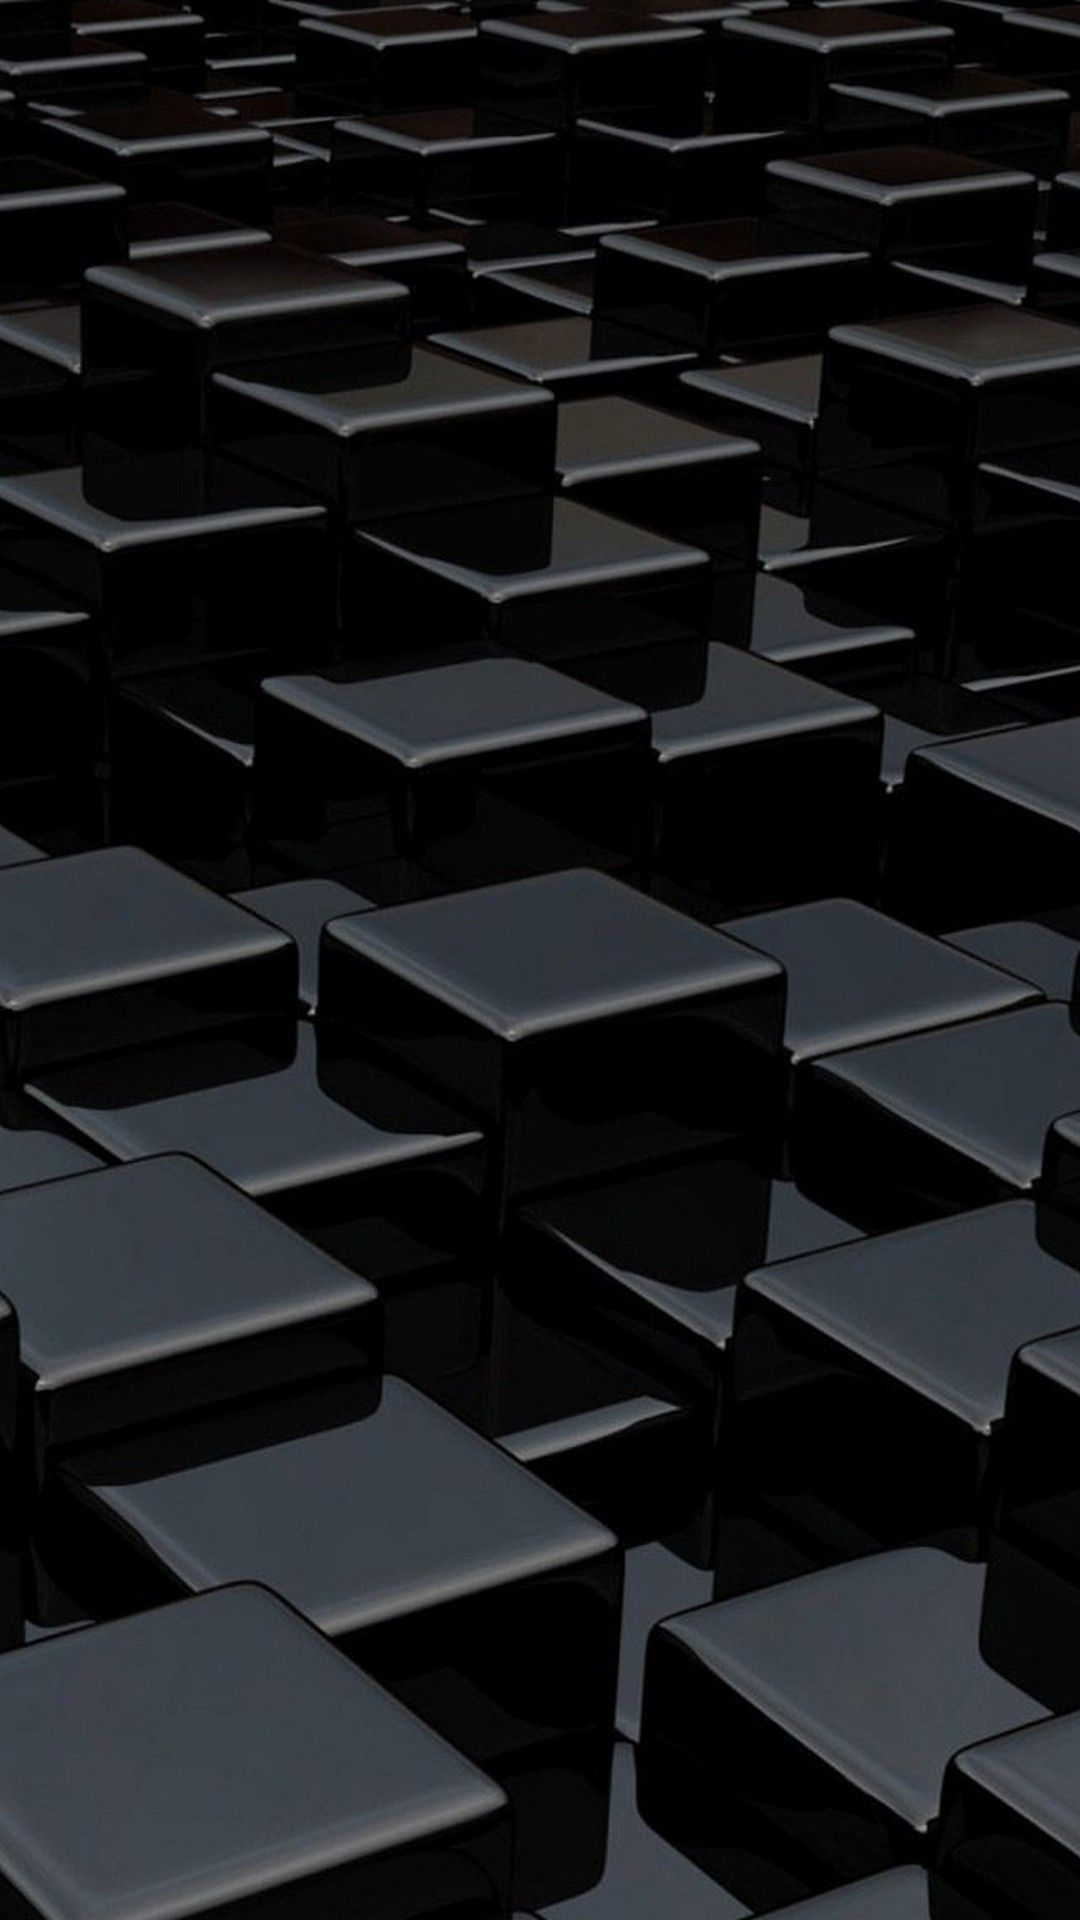 3D Black iPhone Background  Black iphone background, 3d wallpaper